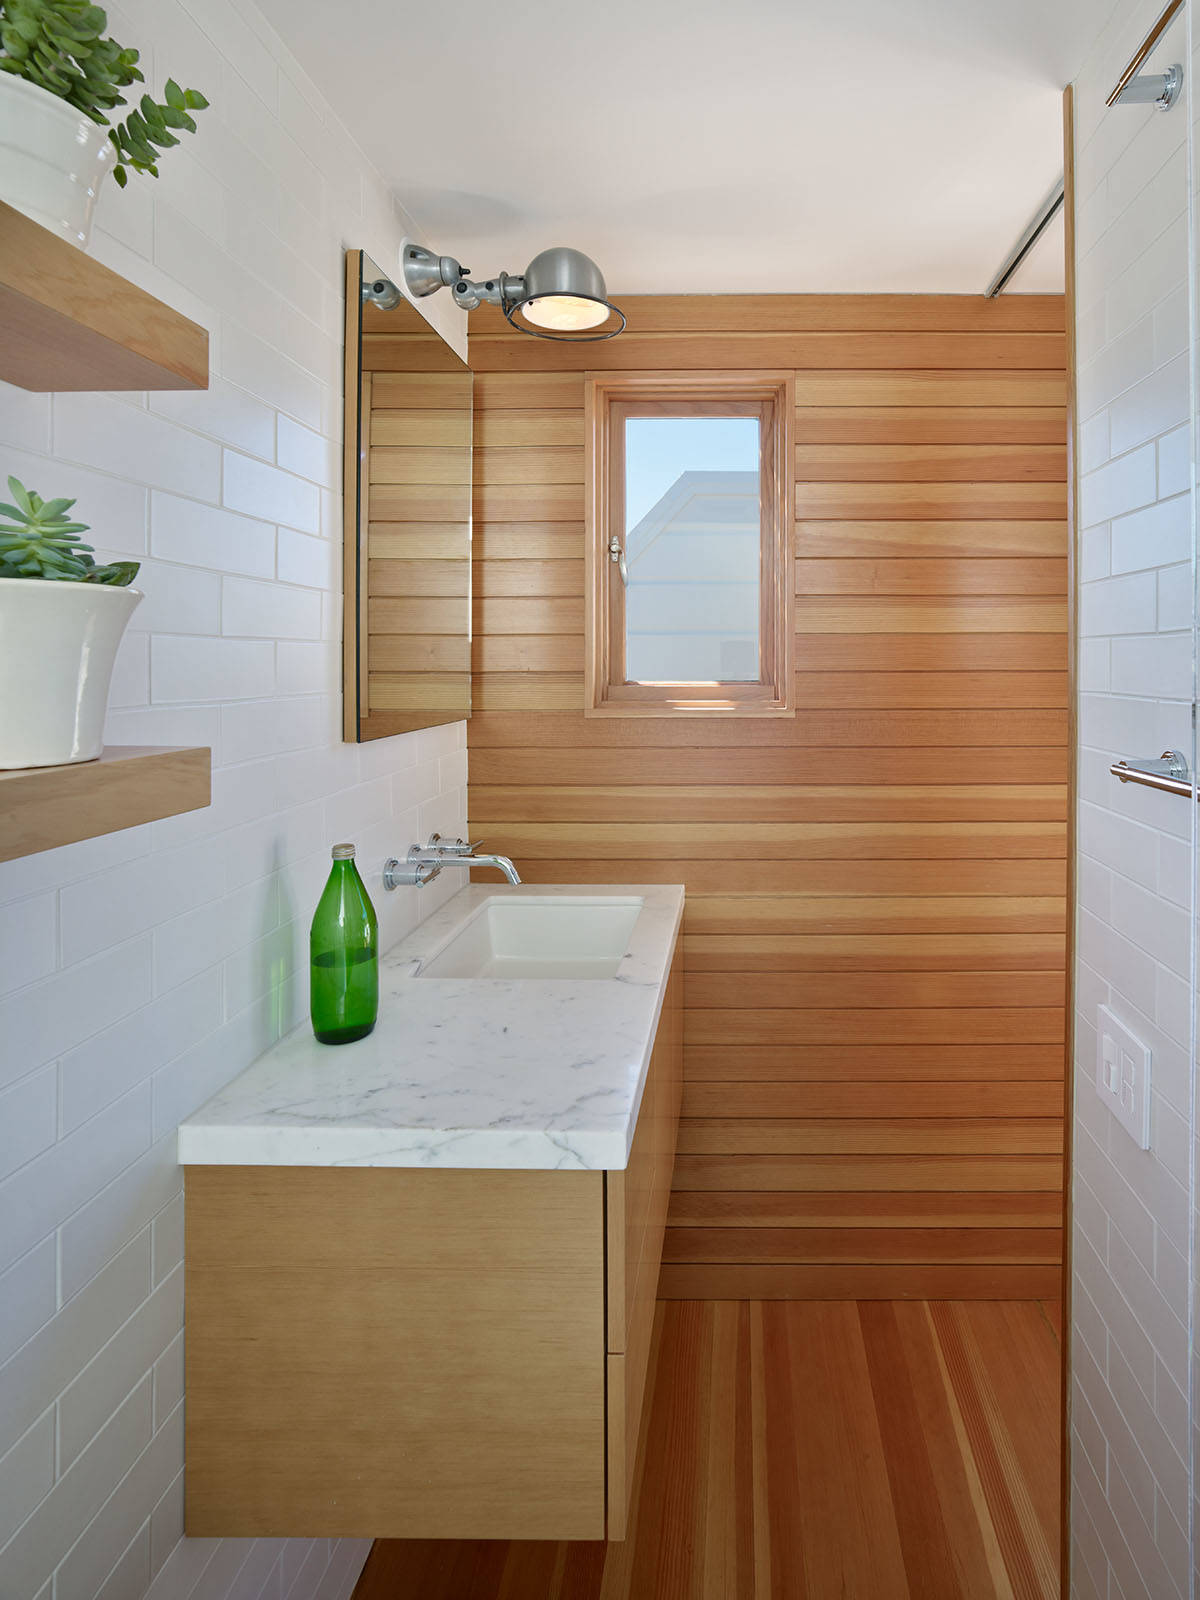 bathroom faucets with low maintenance - ideas